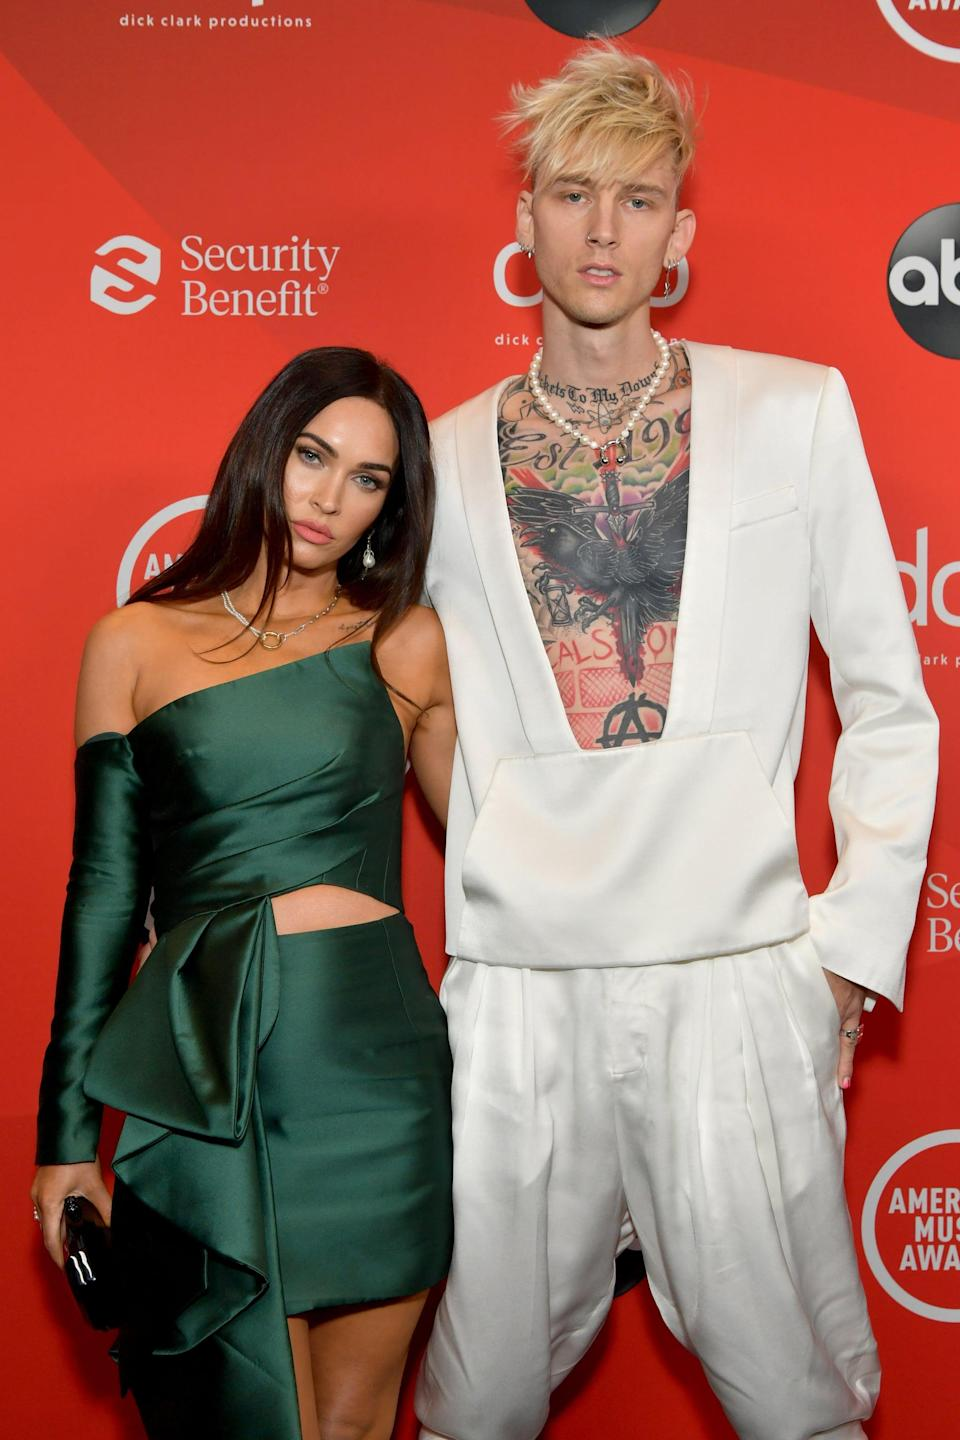 "<p>Megan and Machine Gun Kelly got fans buzzing when they stepped out together in May 2020. A few days after their public outing, <a class=""link rapid-noclick-resp"" href=""https://www.popsugar.com/Brian-Austin-Green"" rel=""nofollow noopener"" target=""_blank"" data-ylk=""slk:Brian Austin Green"">Brian Austin Green</a> confirmed that <a href=""https://www.popsugar.com/celebrity/are-megan-fox-and-brian-austin-green-still-together-47484624"" class=""link rapid-noclick-resp"" rel=""nofollow noopener"" target=""_blank"" data-ylk=""slk:he and Megan had separated"">he and Megan had separated</a> in December 2019, after <a href=""https://www.popsugar.com/celebrity/who-has-megan-fox-dated-47494097"" class=""link rapid-noclick-resp"" rel=""nofollow noopener"" target=""_blank"" data-ylk=""slk:nearly 10 years of marriage"">nearly 10 years of marriage</a>. Megan and MGK further ramped up dating rumors when the rapper dropped his music video for ""Bloody Valentine,"" starring the <strong>Transformers</strong> actress. In June 2020, <a href=""https://www.dailymail.co.uk/tvshowbiz/article-8425303/Megan-Fox-EXCLUSIVE-Actress-confirms-romance-Machine-Gun-Kelly-share-kiss.html"" class=""link rapid-noclick-resp"" rel=""nofollow noopener"" target=""_blank"" data-ylk=""slk:the two basically confirmed their romance"">the two basically confirmed their romance</a> when they were spotted sharing a kiss outside of a bar in LA, and they've shared <a href=""https://www.popsugar.com/celebrity/megan-fox-and-machine-gun-kelly-cute-pictures-47652766"" class=""link rapid-noclick-resp"" rel=""nofollow noopener"" target=""_blank"" data-ylk=""slk:a handful of cute moments"">a handful of cute moments</a> ever since.</p>"